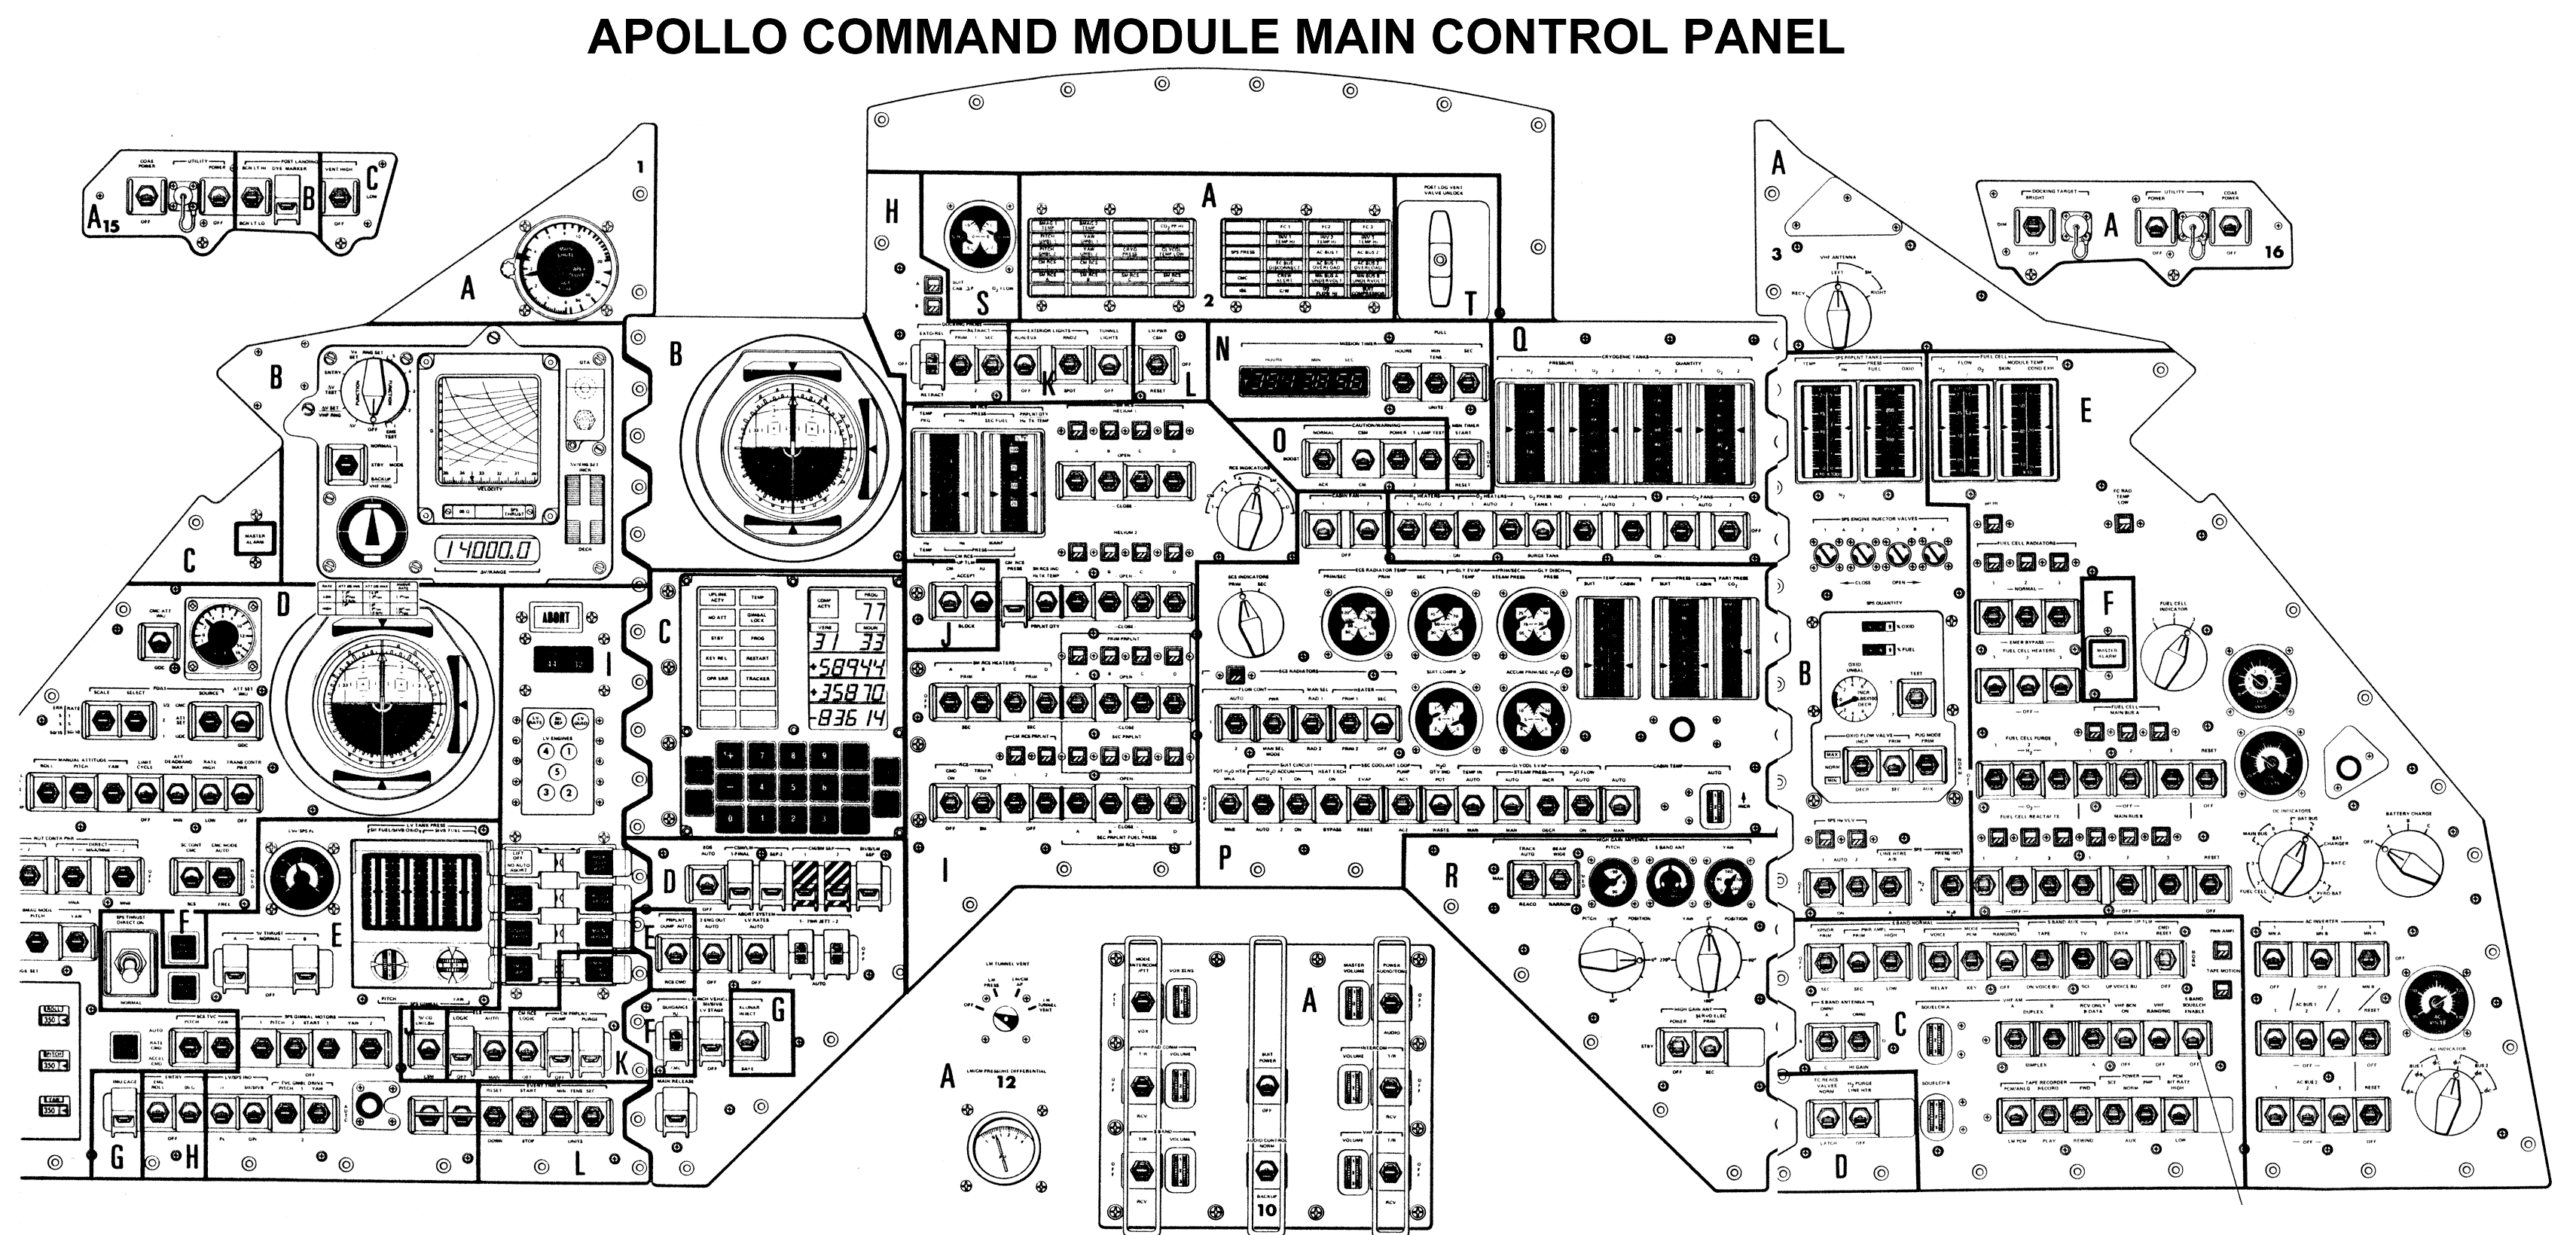 Instrumentation layout of a Block II Apollo Command Module. Can you spy the AGC DSKY?